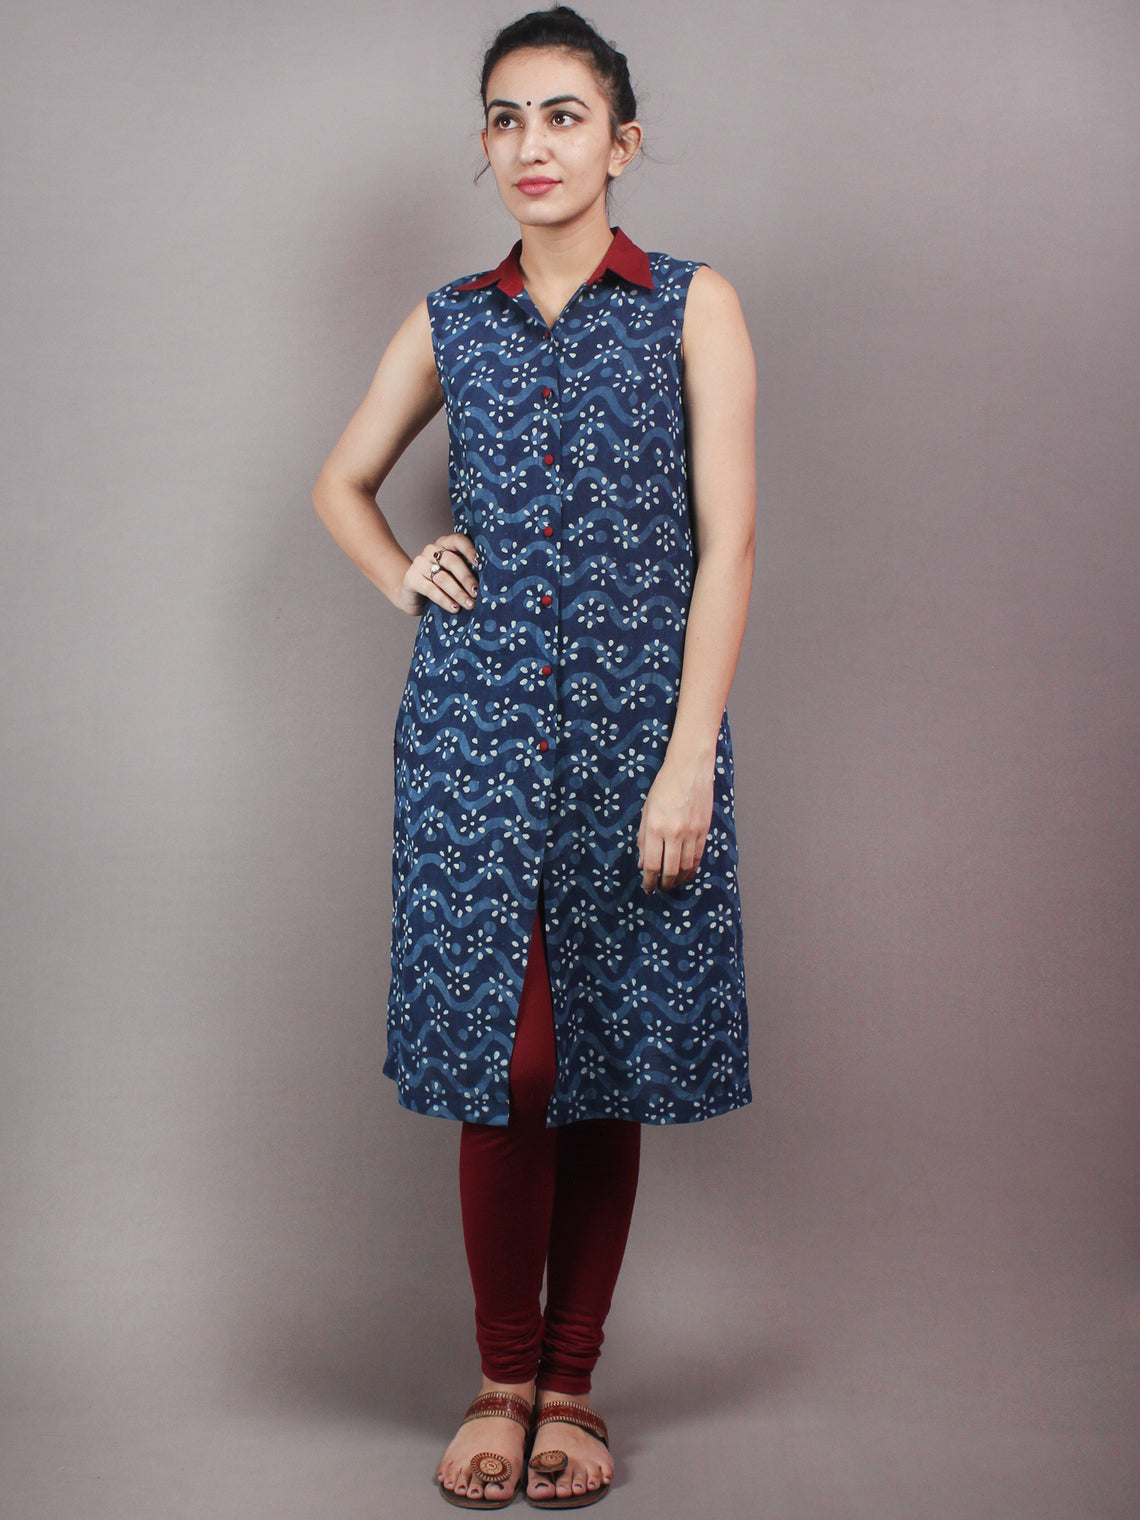 Indigo Ivory Maroon Hand Block Printed Kurti With Open Front With Buttons - K02A17001